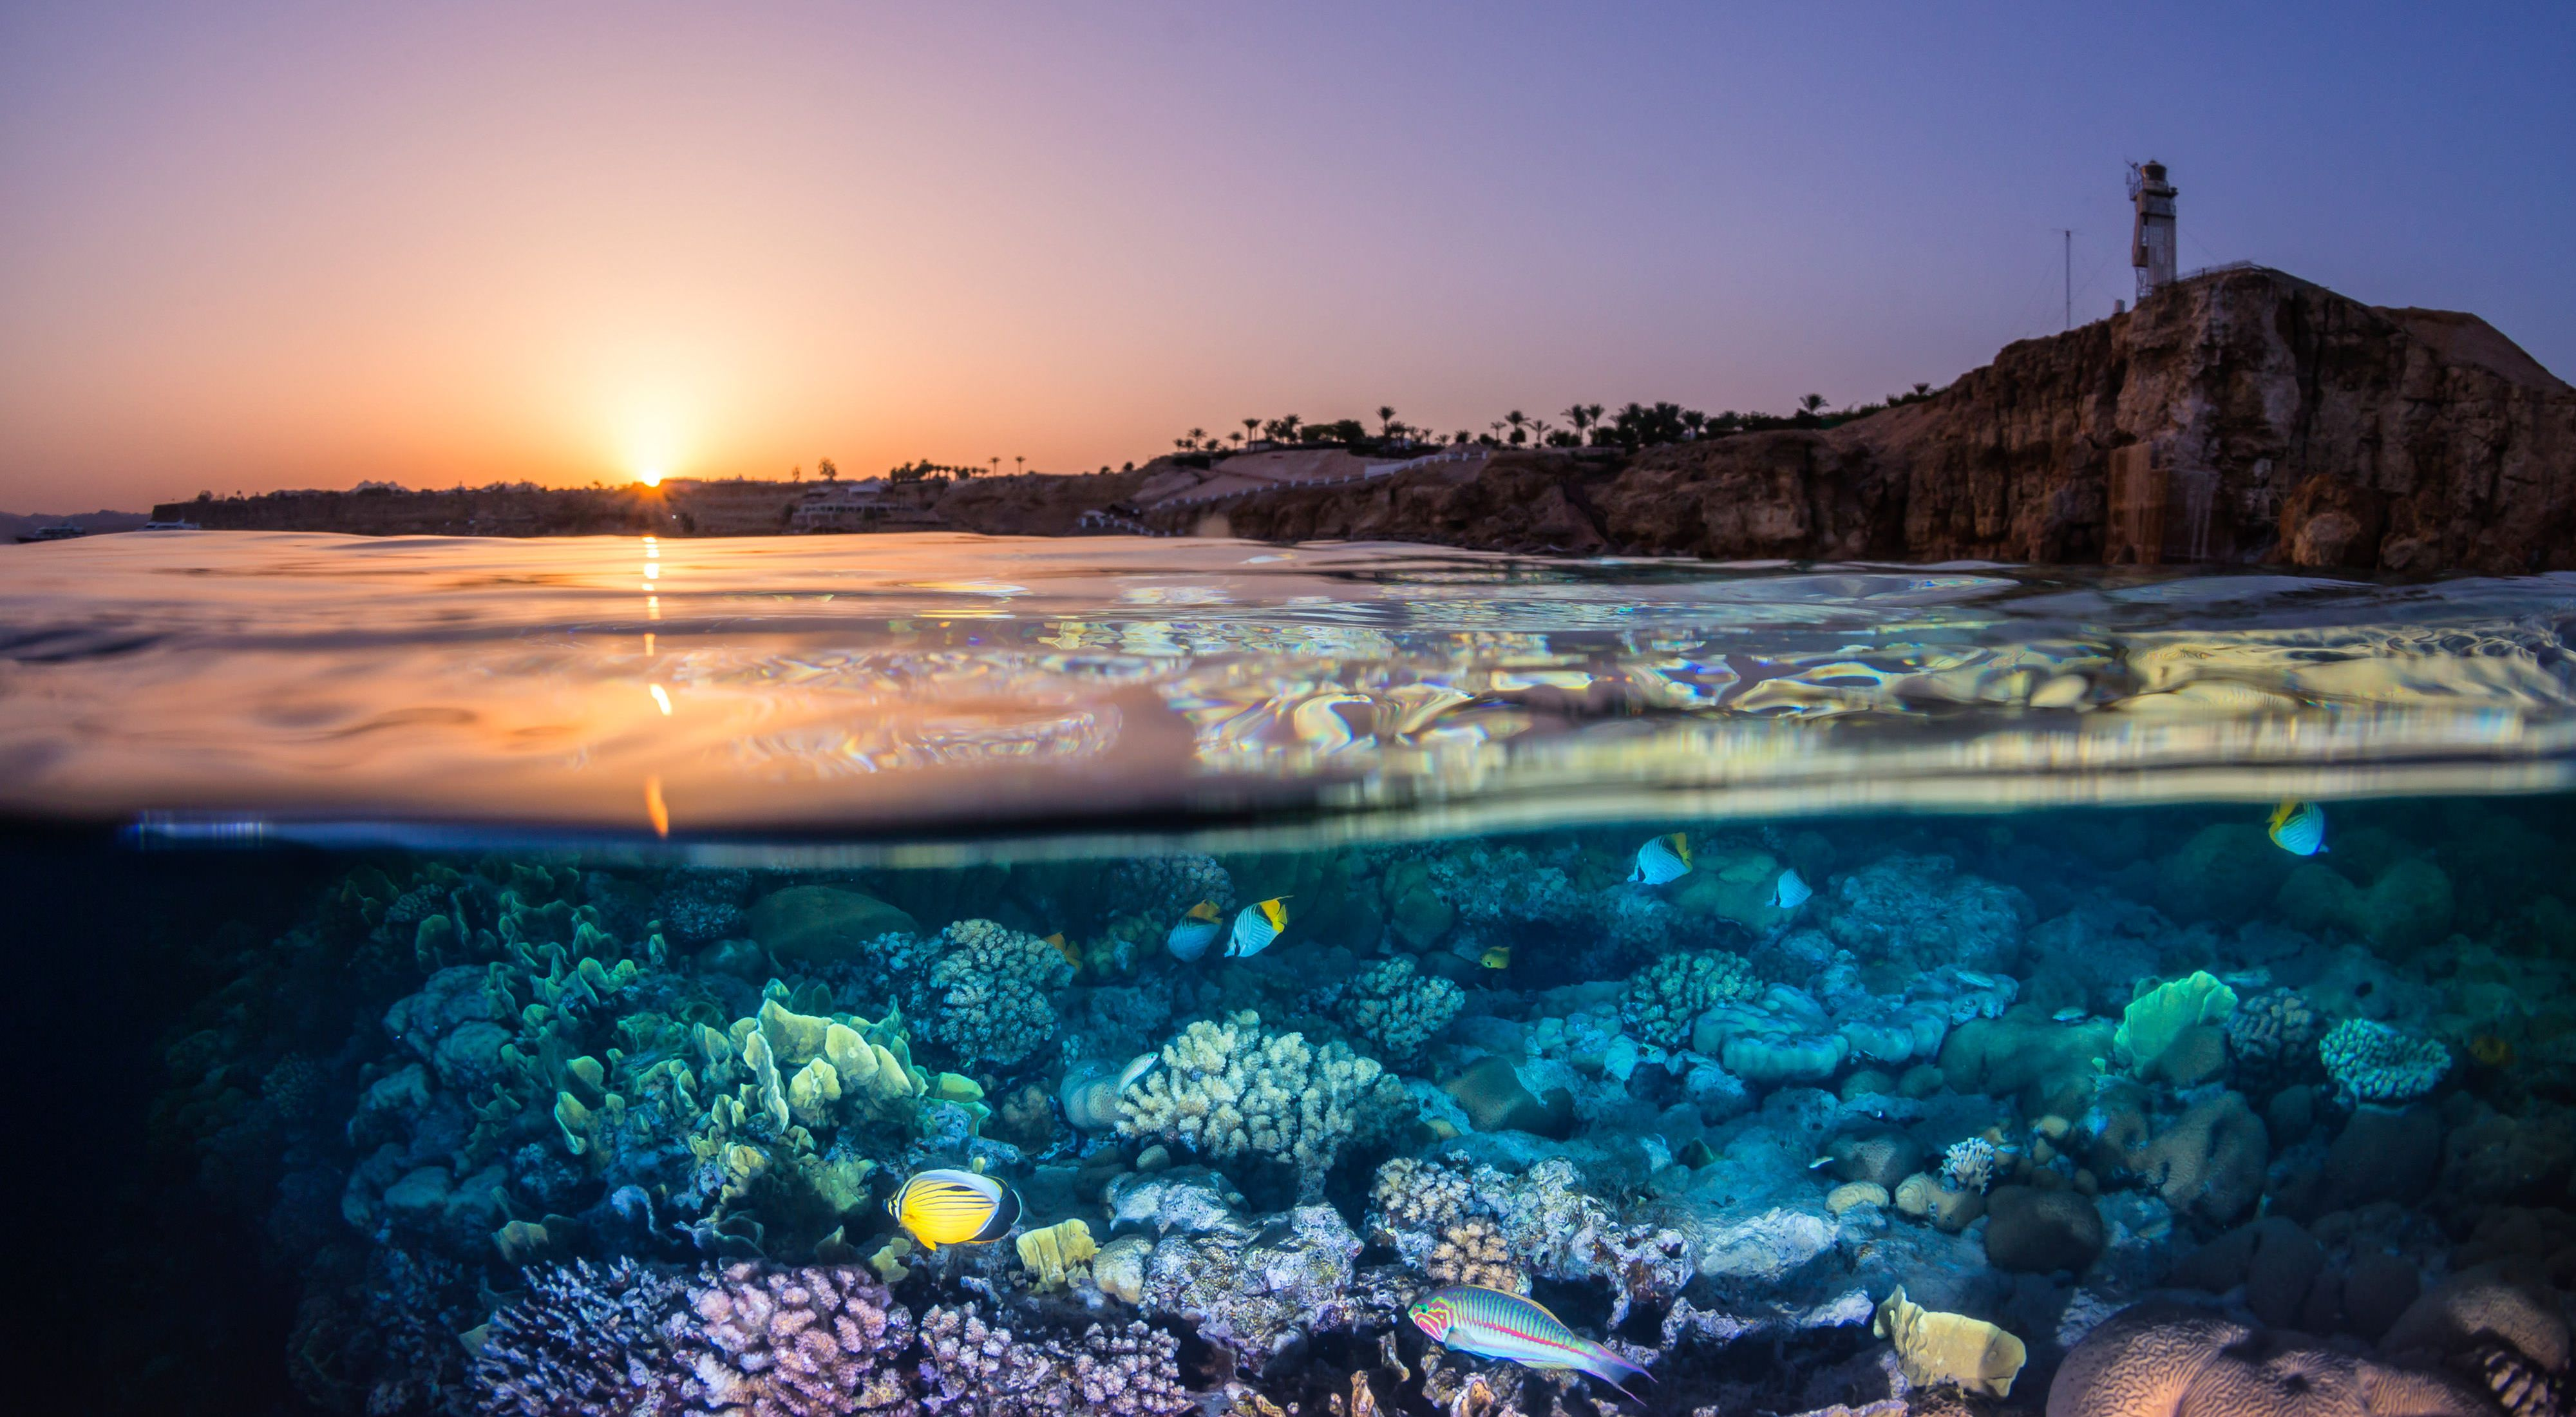 View of sunset and coral reef in Egypt.